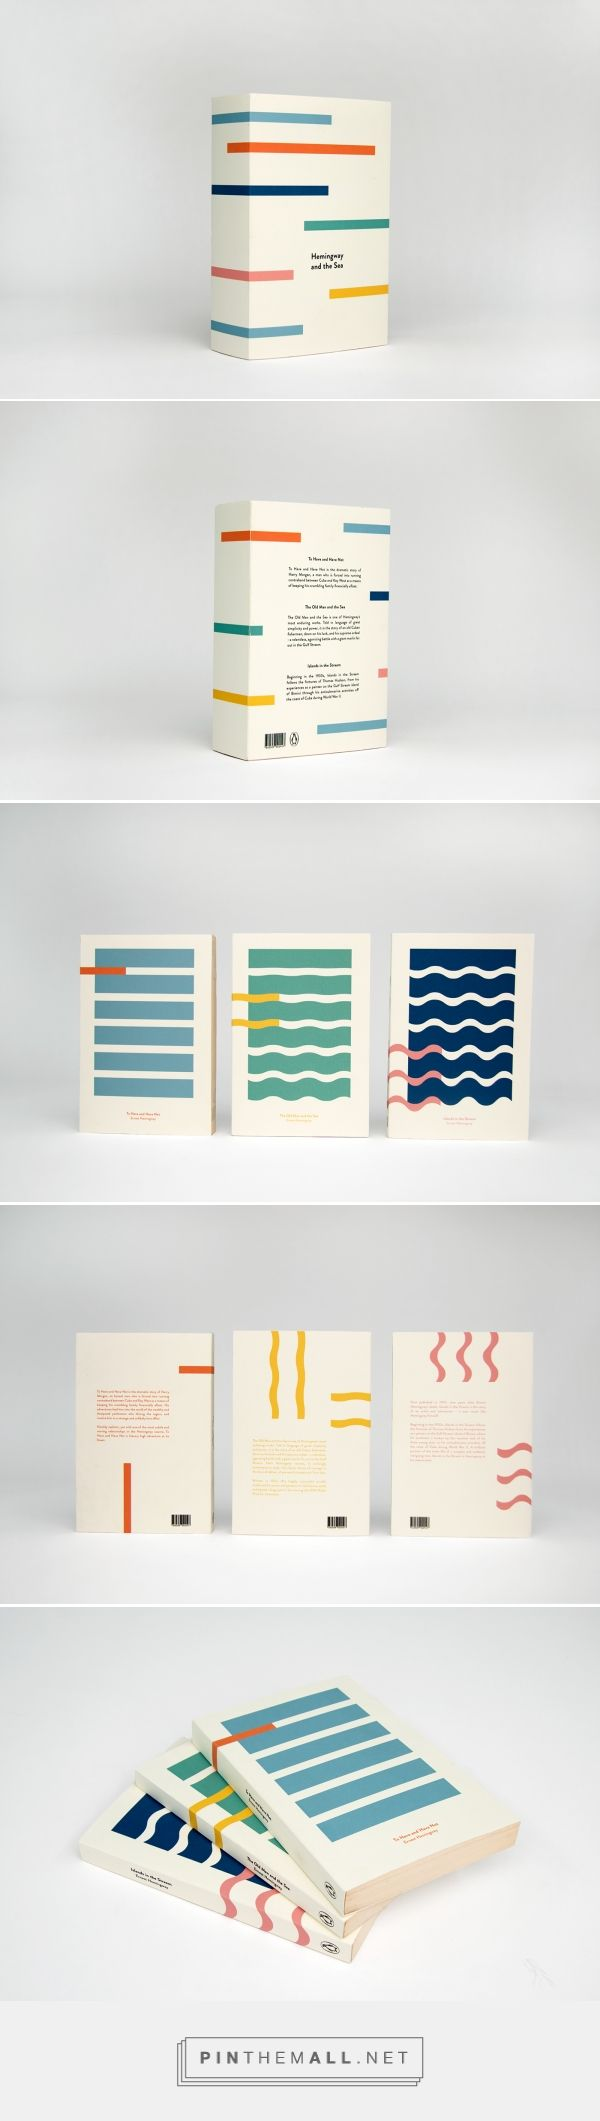 Hemingway and the Sea on Behance by Kajsa Klaesén curated by Packaging Diva PD. Collectors box packaging and covers for three novels by Ernest Hemingway.